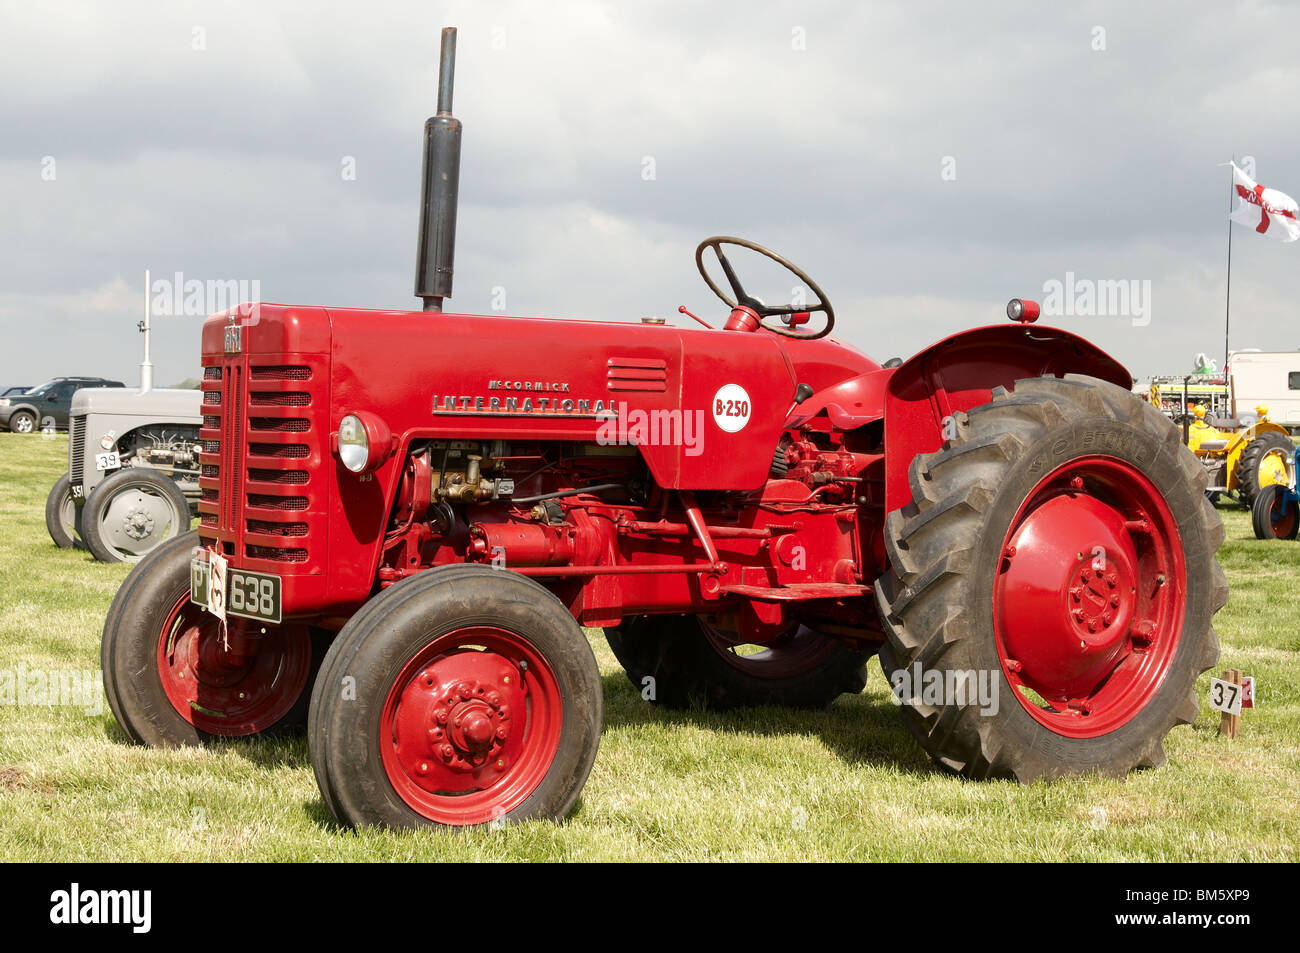 Classic agricultural tractors displayed at the Bill Targett Memorial Rally  held at Matterley Farm, Winchester